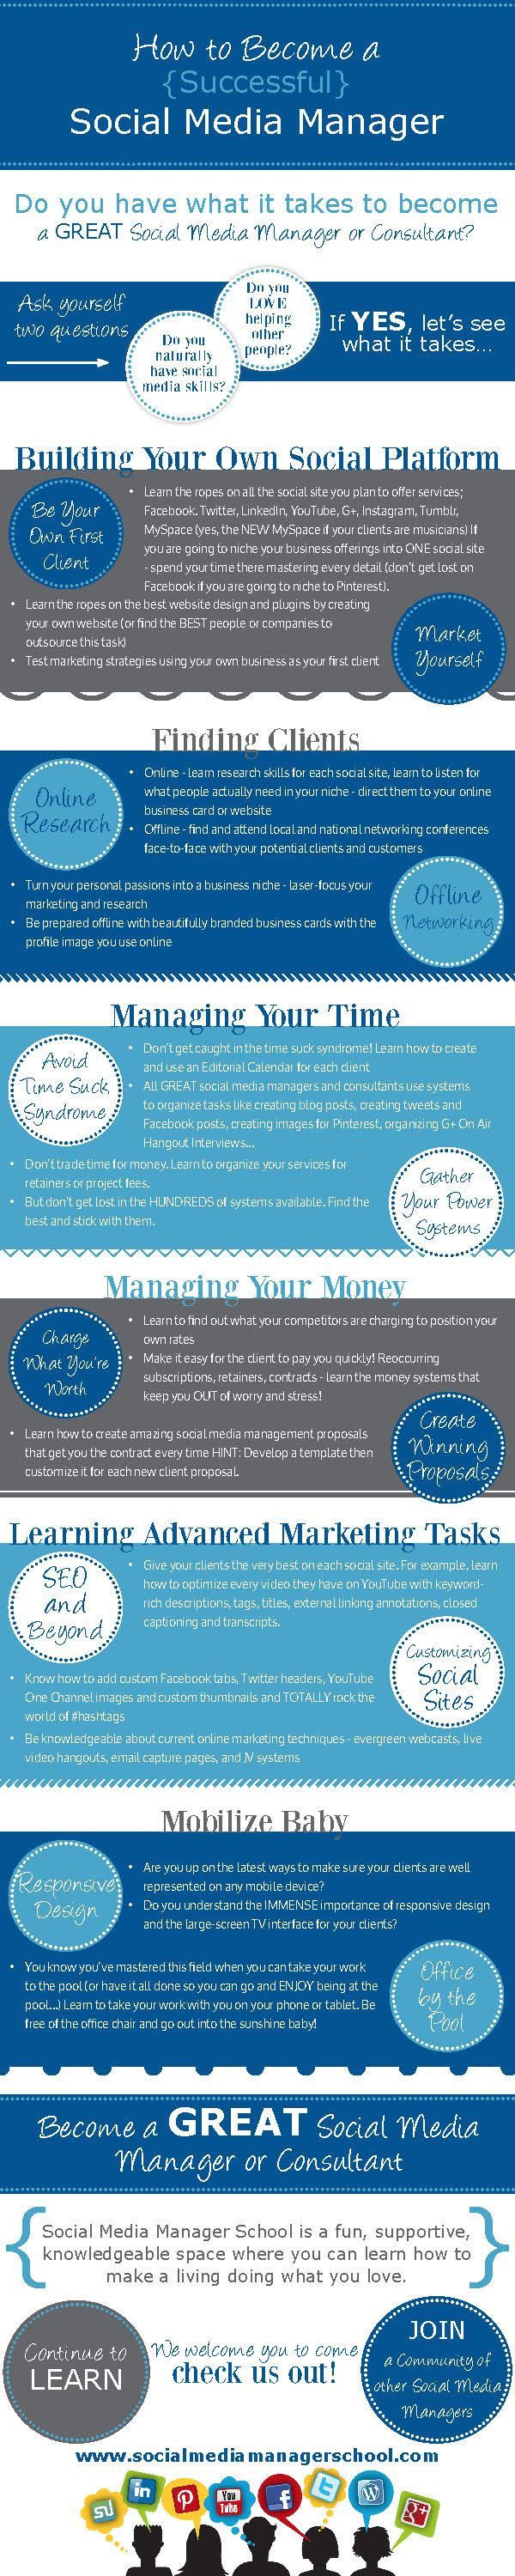 How To Become A Successful Social Media Manager [infographic]